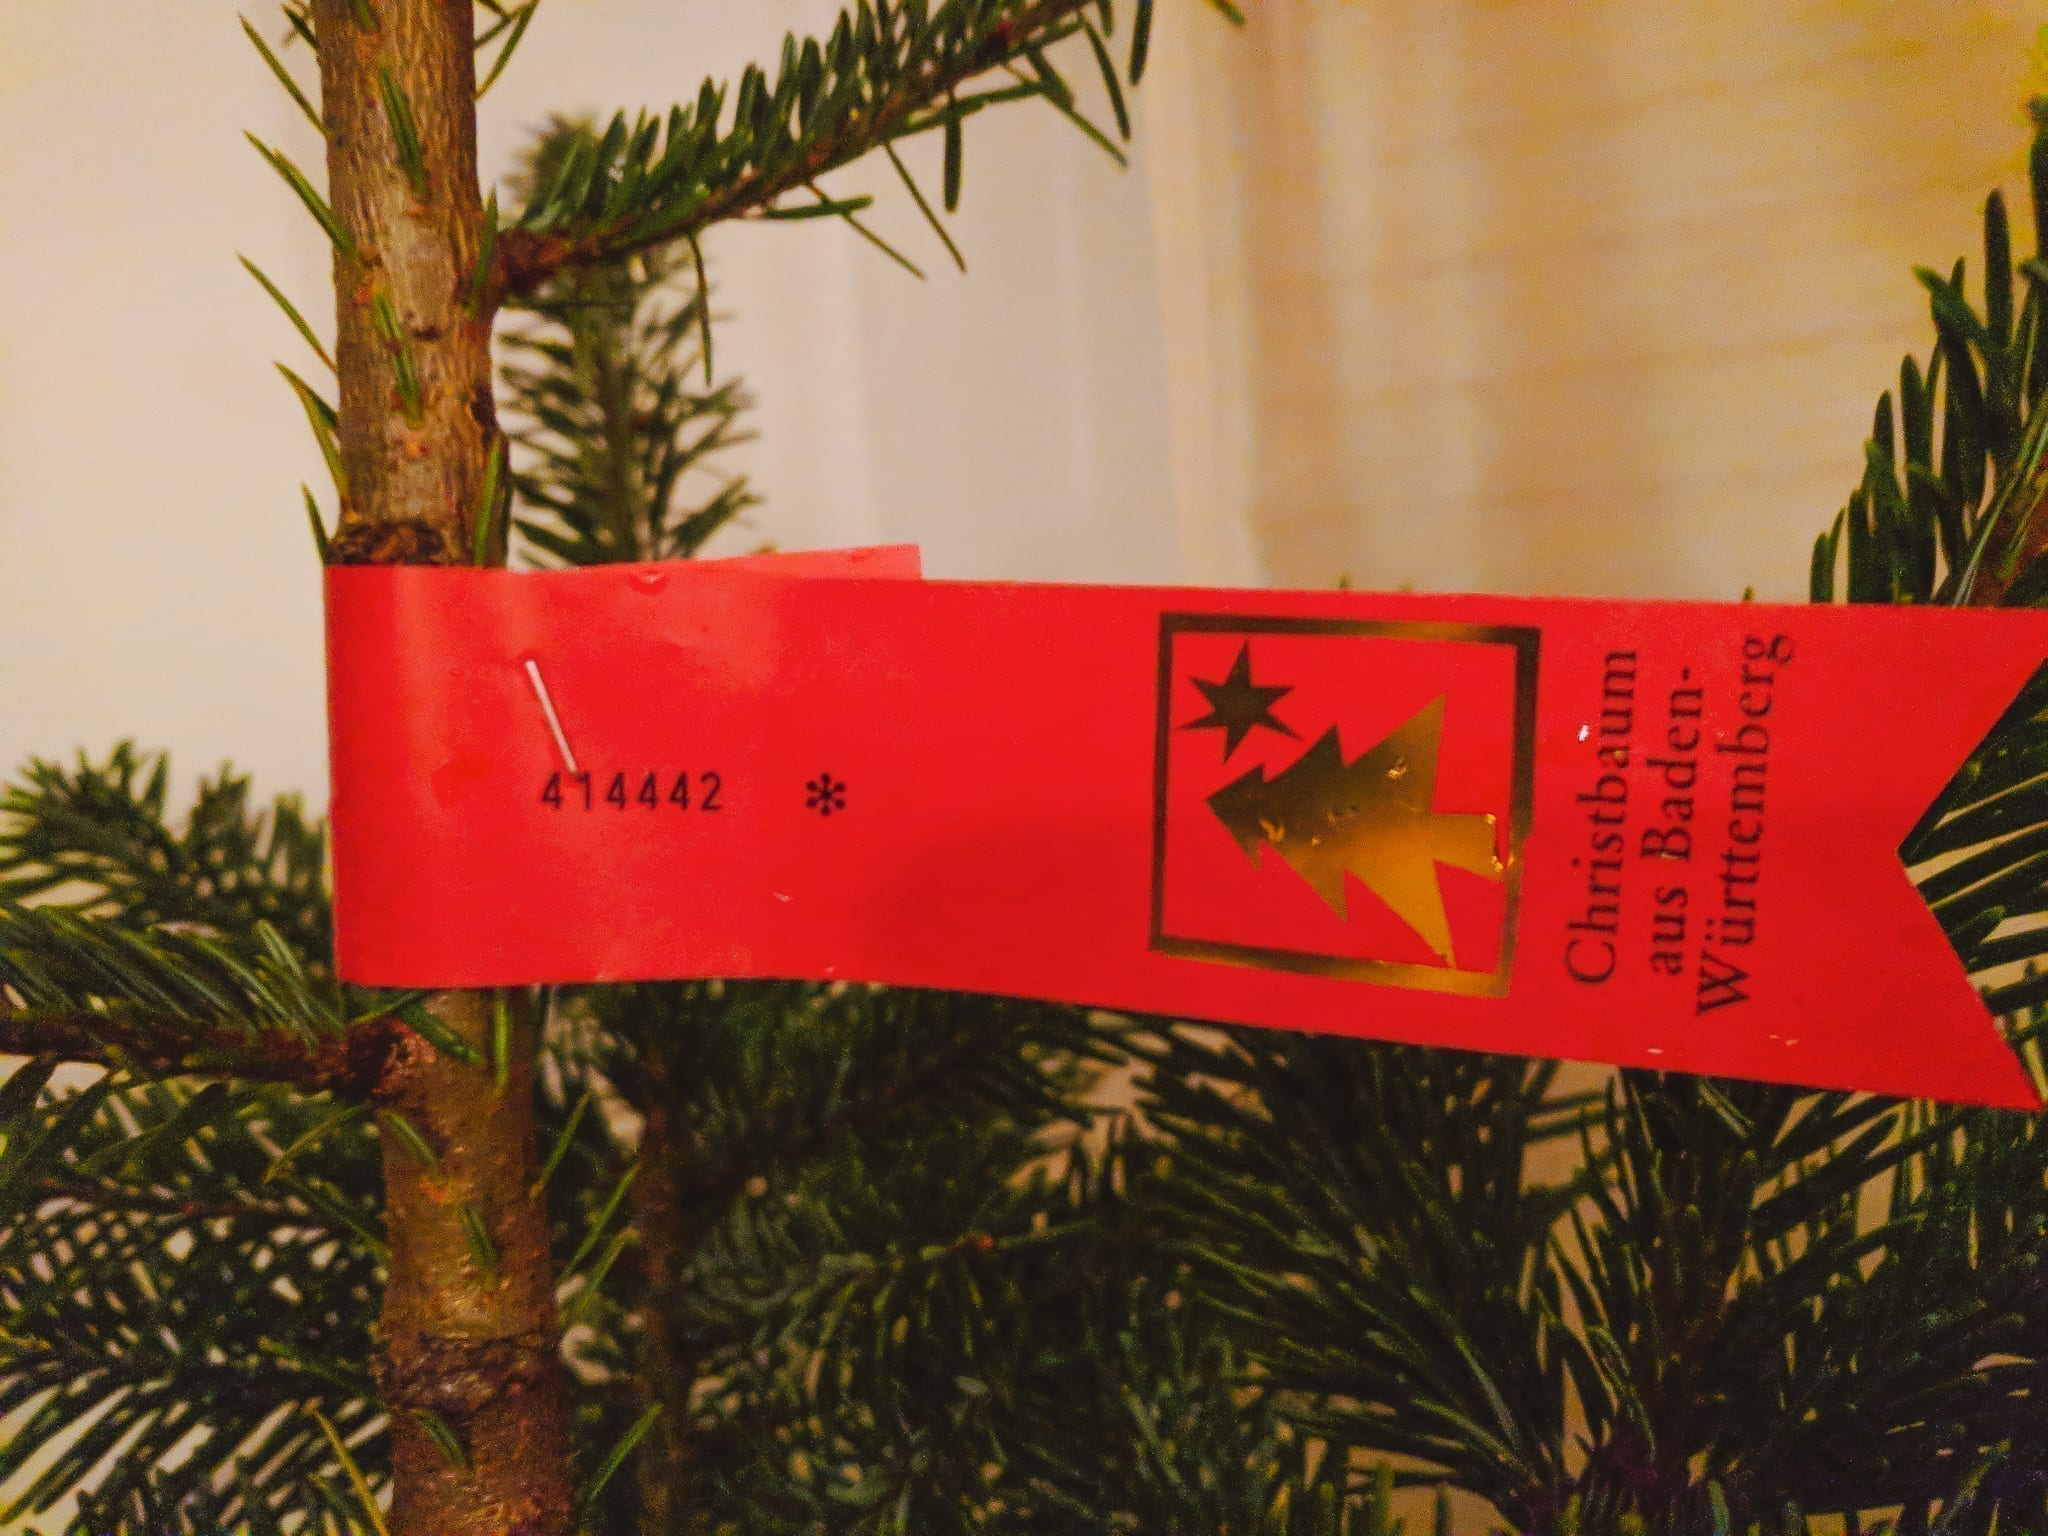 A Christmas tree in Germany with a sign that says